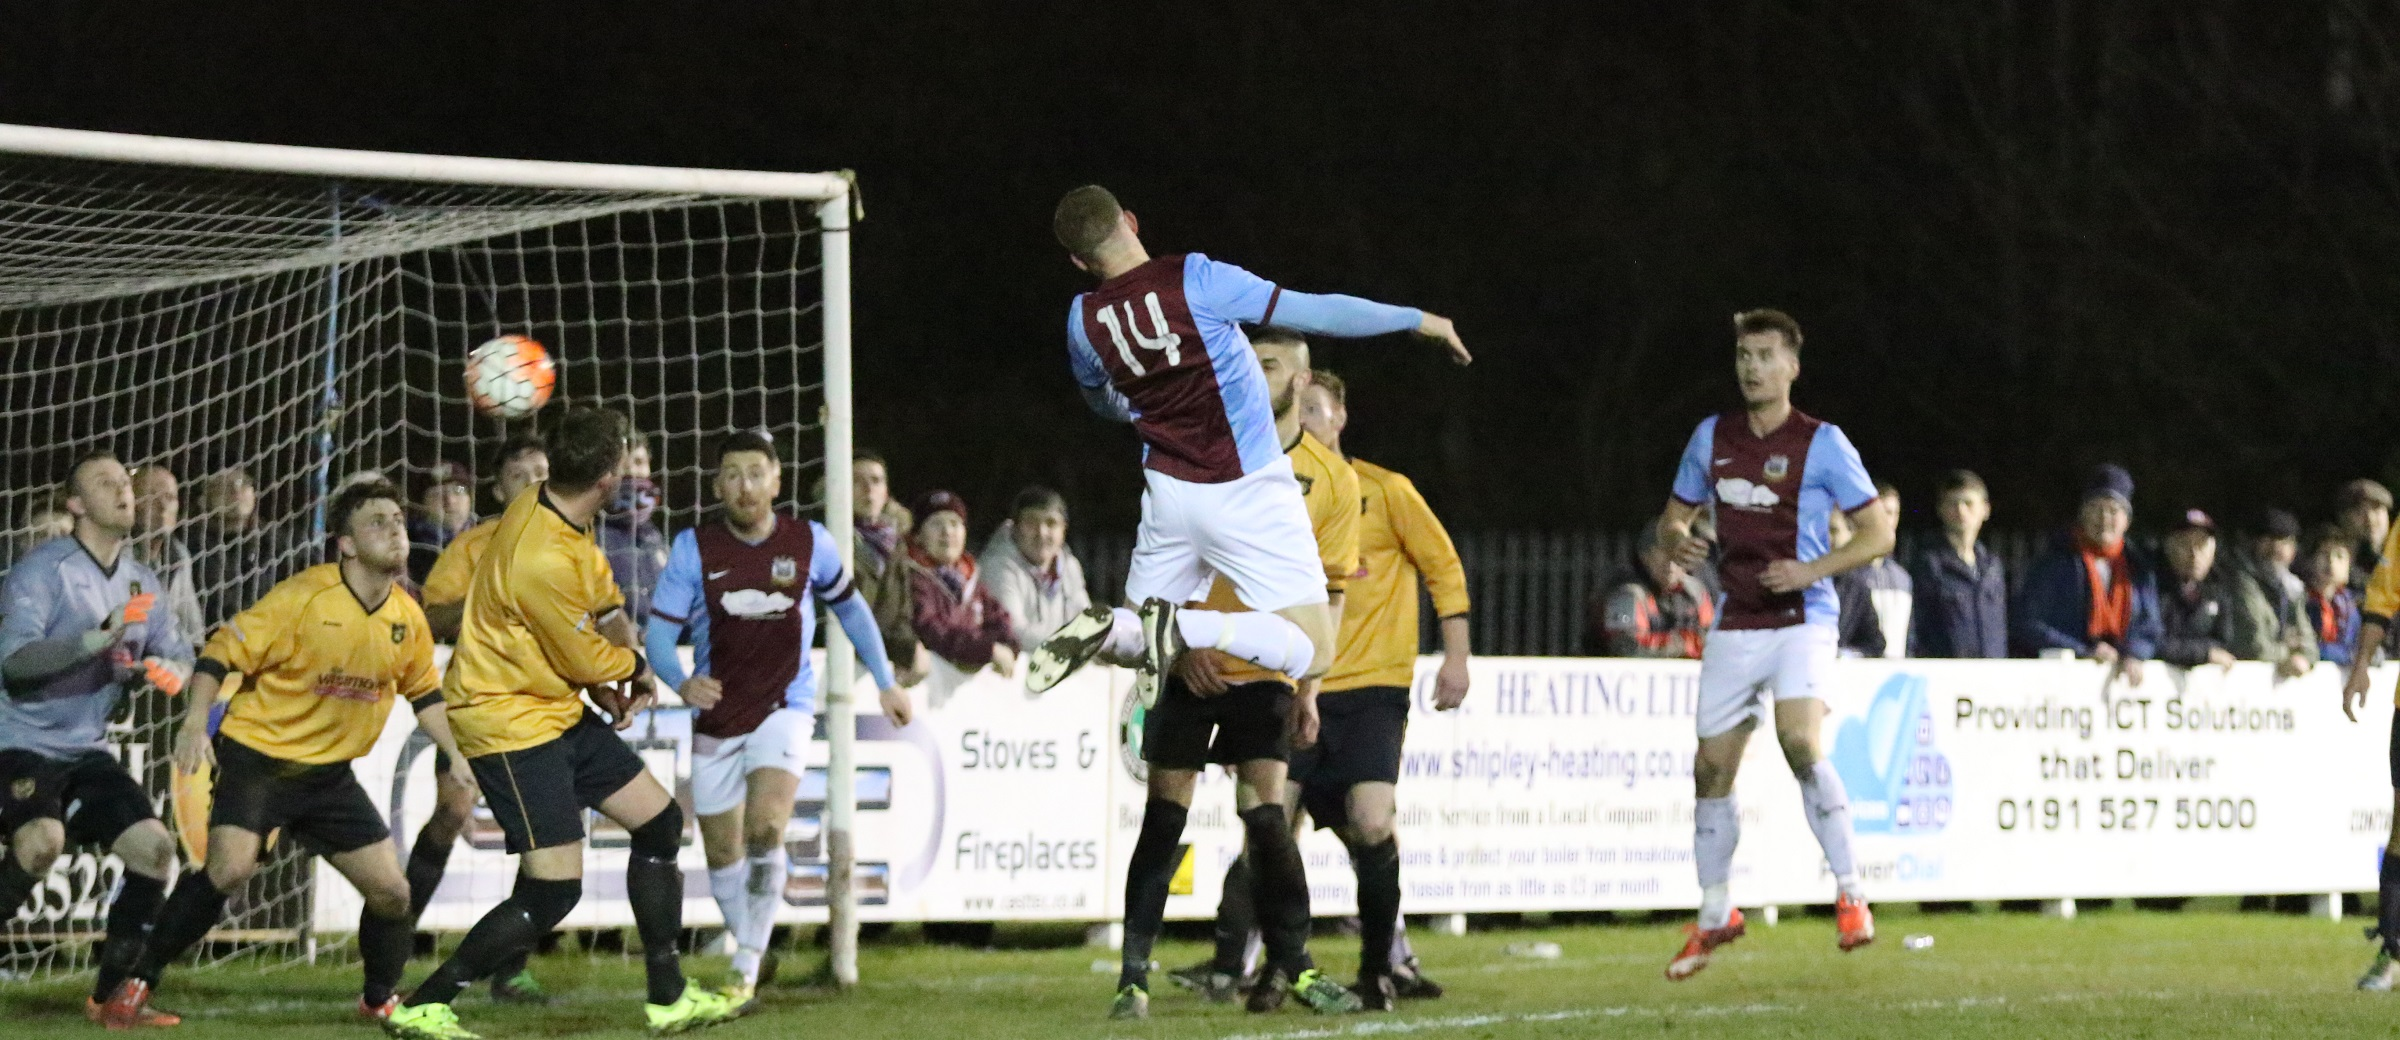 HIGHLIGHTS: South Shields 5-0 Crook Town